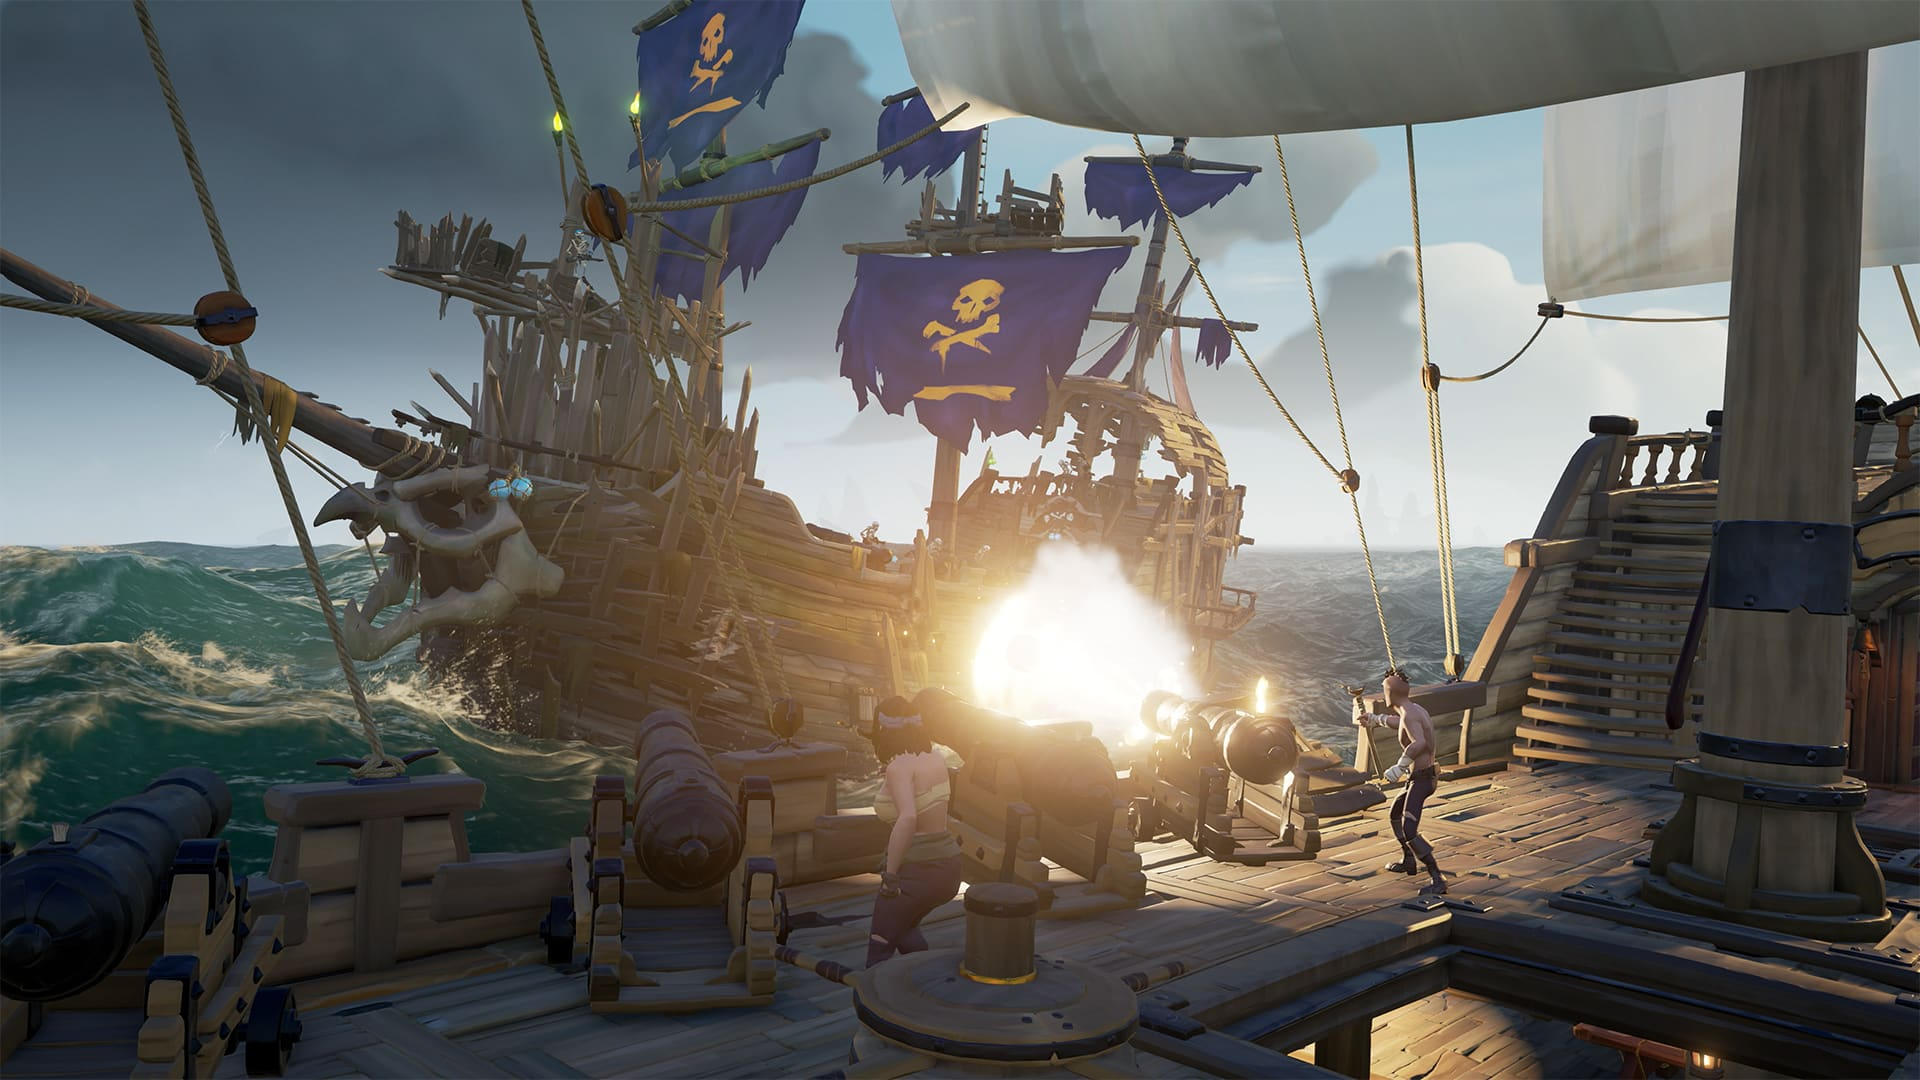 Microsoft Rare Sea of Thieves Tall Tales reimagines video game narrative storytelling with live cutscenes and lived-in experience